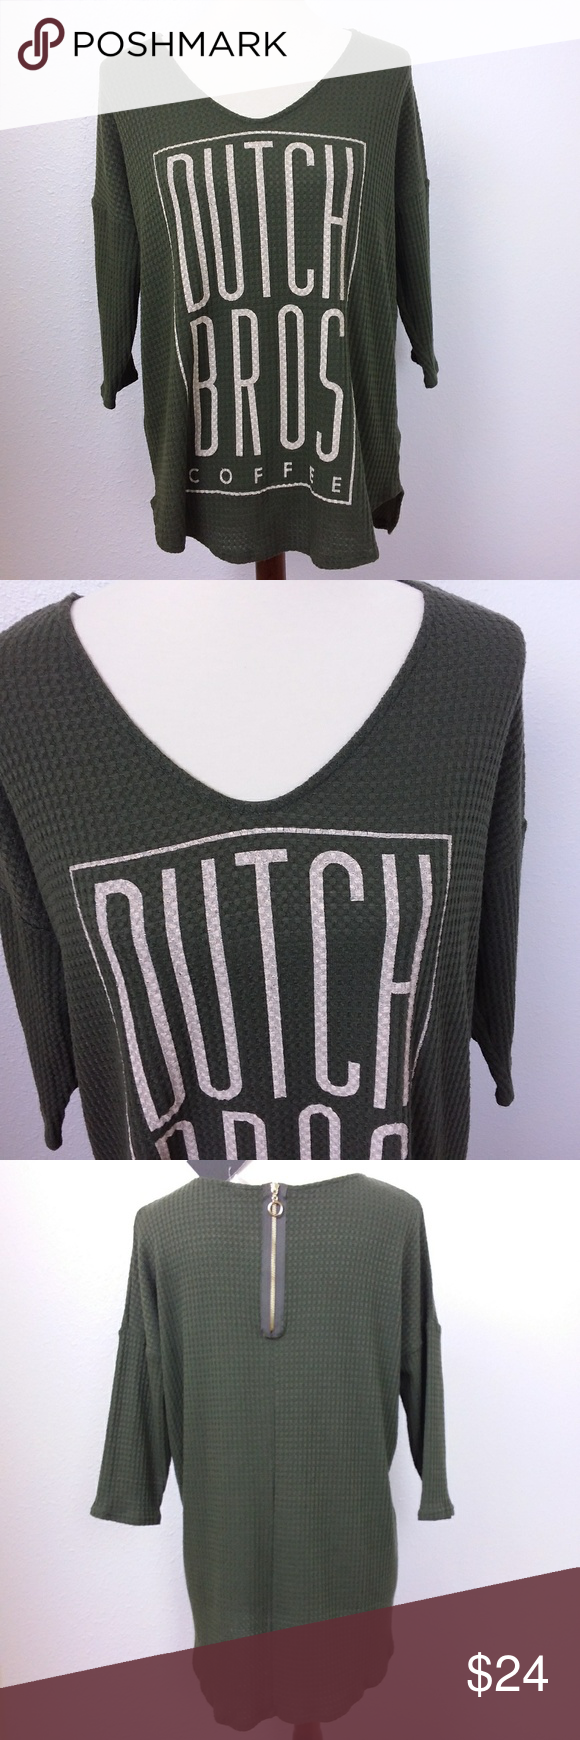 DuTCh BRo CoFFee Light Thermal Graphic Green Top Dutch Bros. is the best coffee establishment around. (coffee not included)  New with tag.  Dutch Bro coffee lightweight thermal / waffle texture tunic top.  Dark olive green with graphic on the front.  Expose gold zipper on the back.  Super soft and stretchy.   Great gift or for your collection. Tag size: S (oversize top) 22 armpit to armpit 27 shoulder to hem Thanks * Ship within 1 business day Area: o Dutch Bros Tops Tunics #dutchbros DuTCh BR #dutchbros